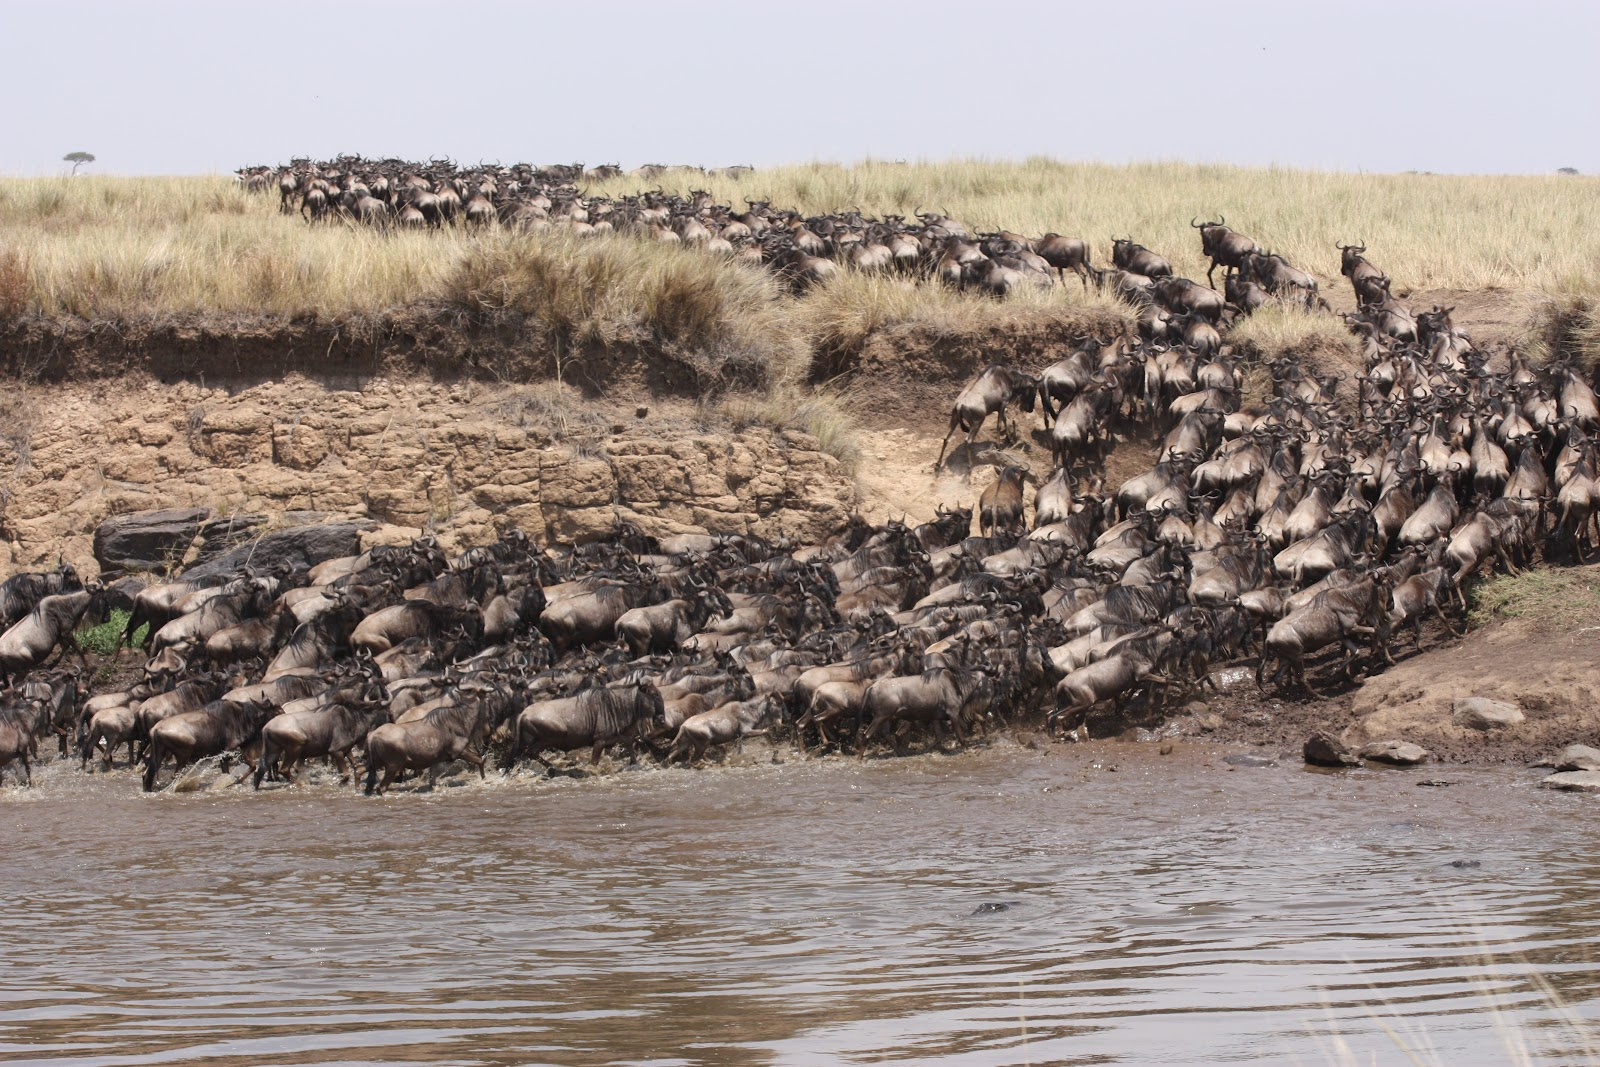 Witness the annual wildebeest migration at the Maasai Mara.